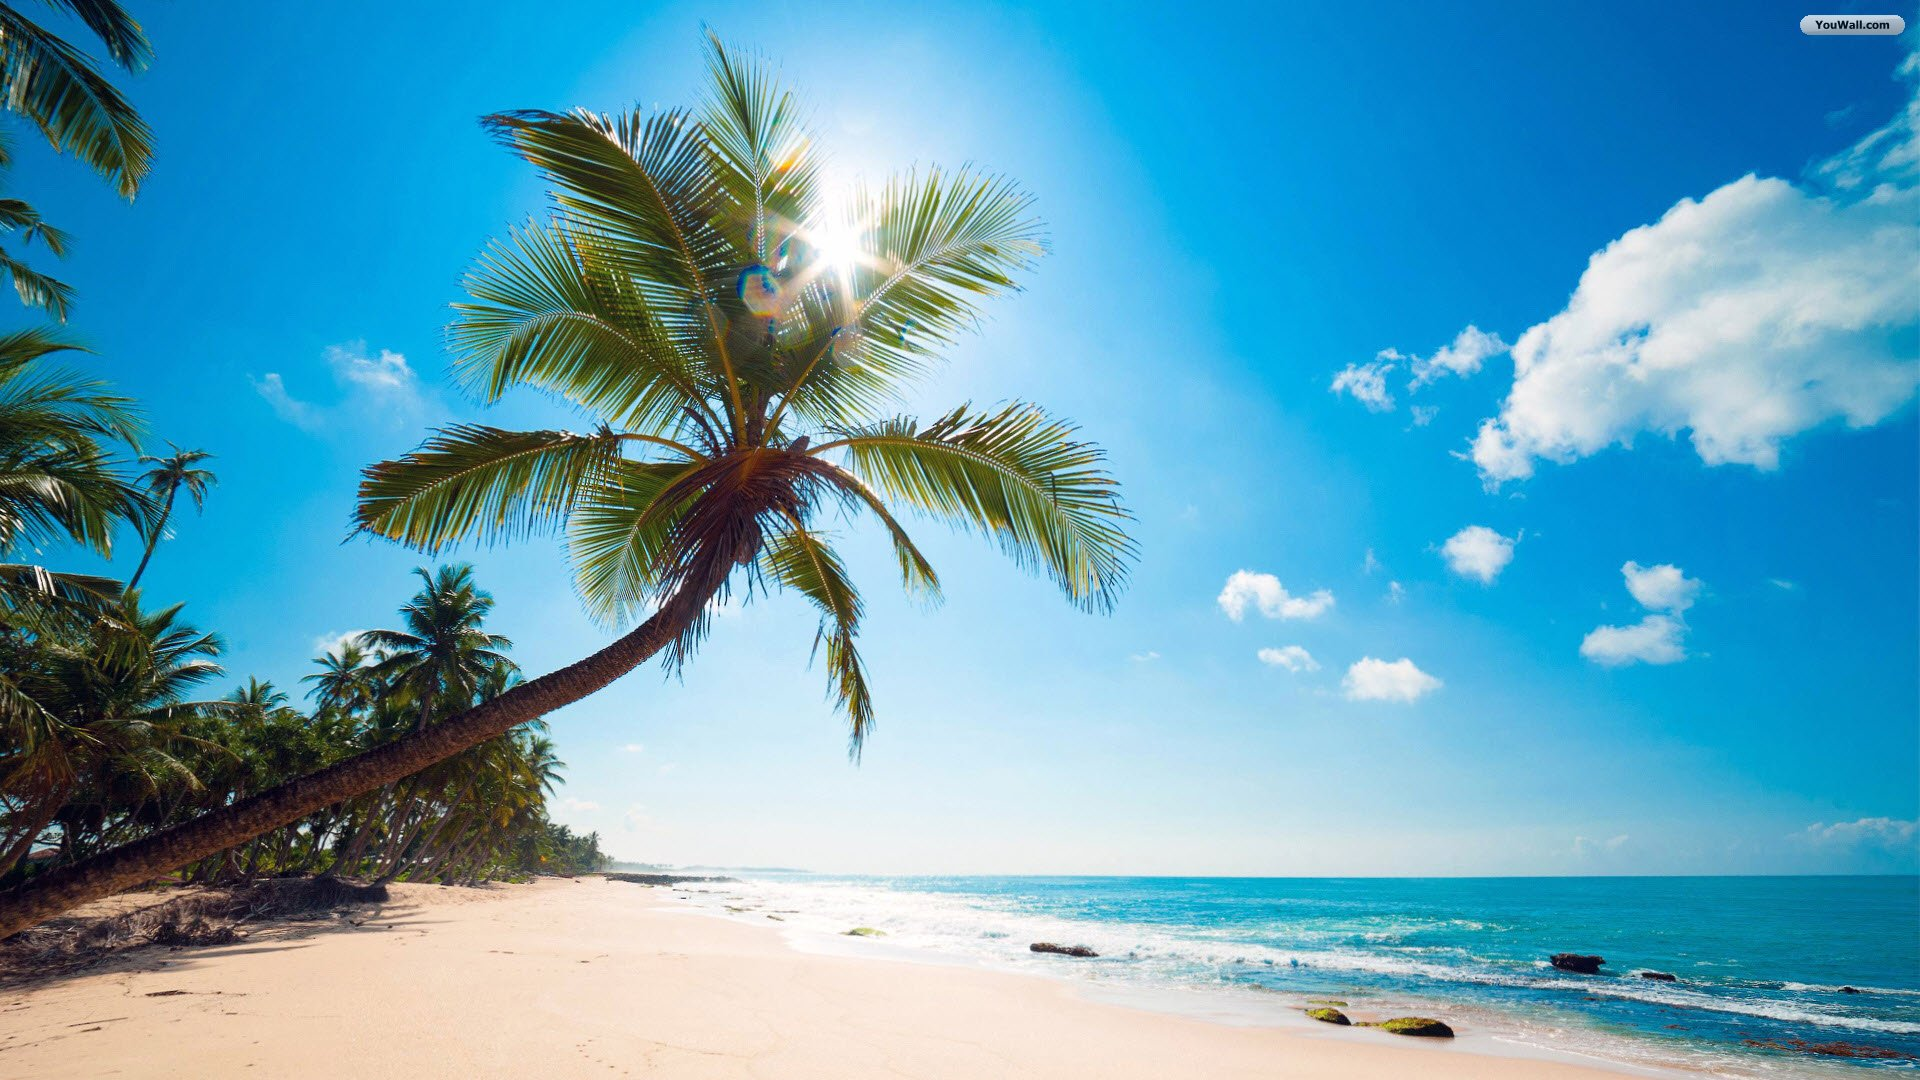 Tropical Beach Wallpapers High Resolution Is Cool Wallpapers